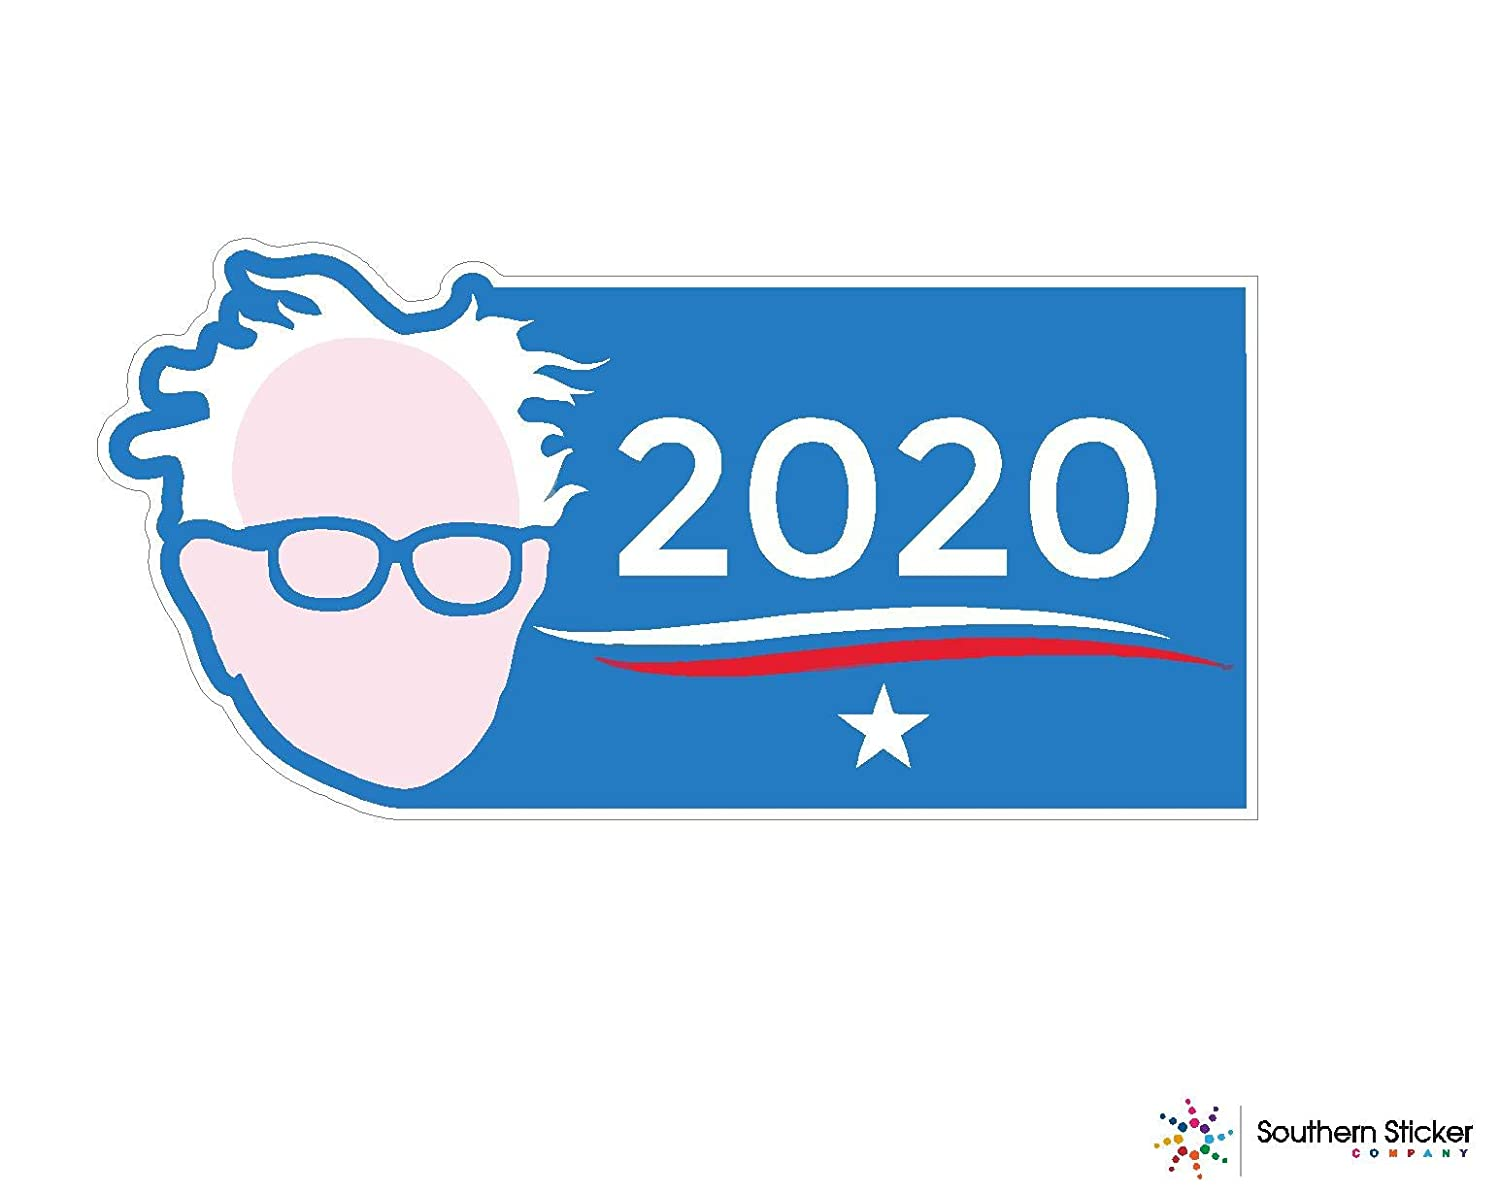 Bernie sanders 2020 face 3x1 size inches each order comes with 3 stickers bumper sticker president election trump politics voting love baby laptop car